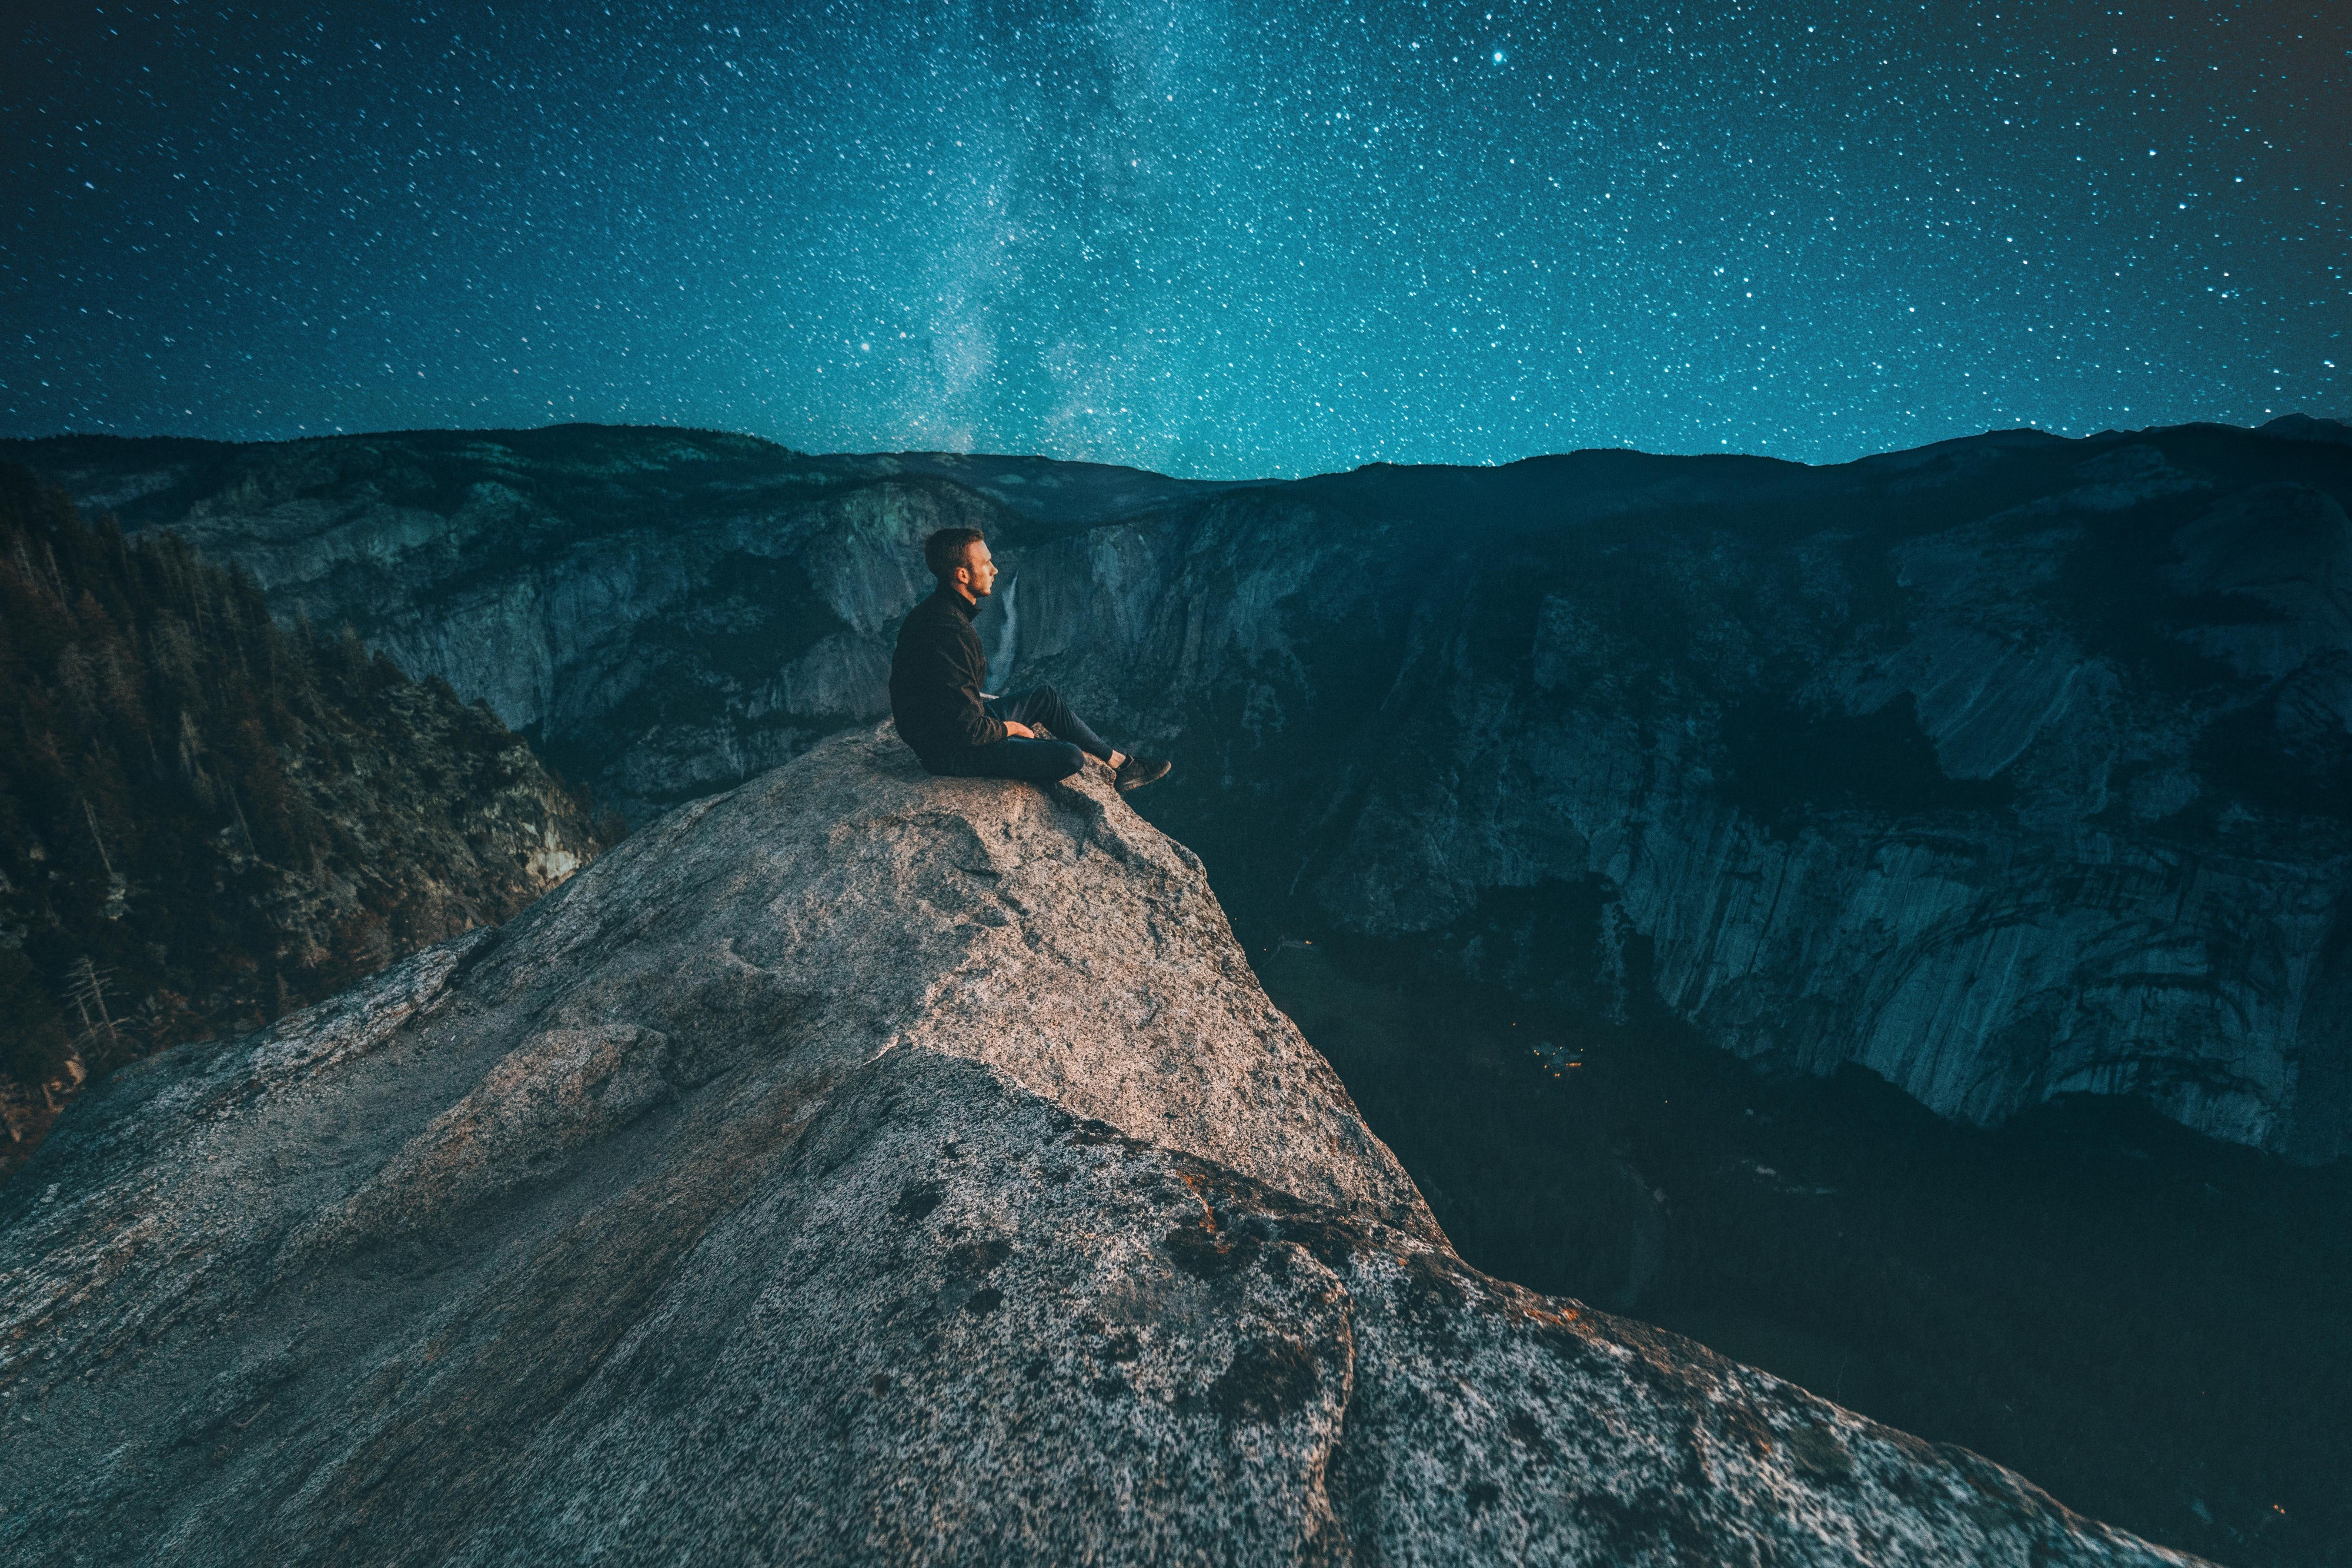 Person sitting on a rock looking out over a mountain range